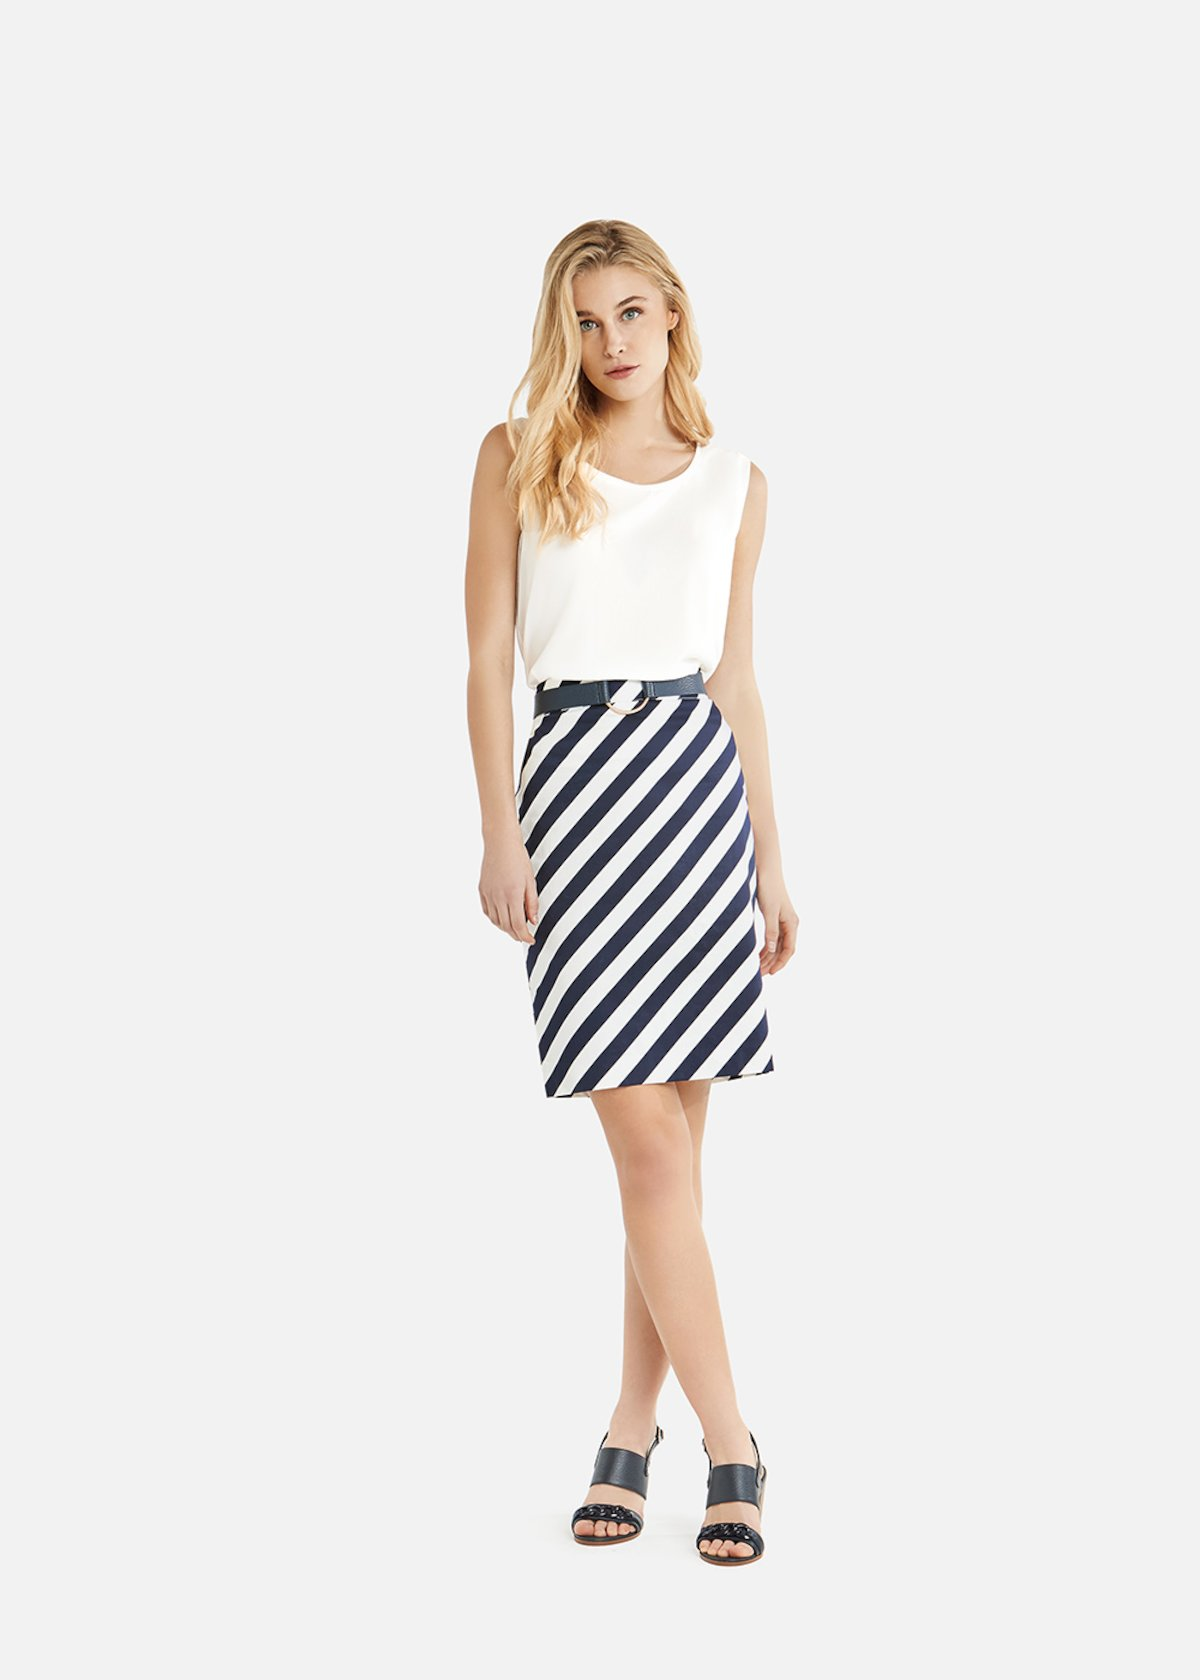 Judy stripes fantasy skirt with slit on the back